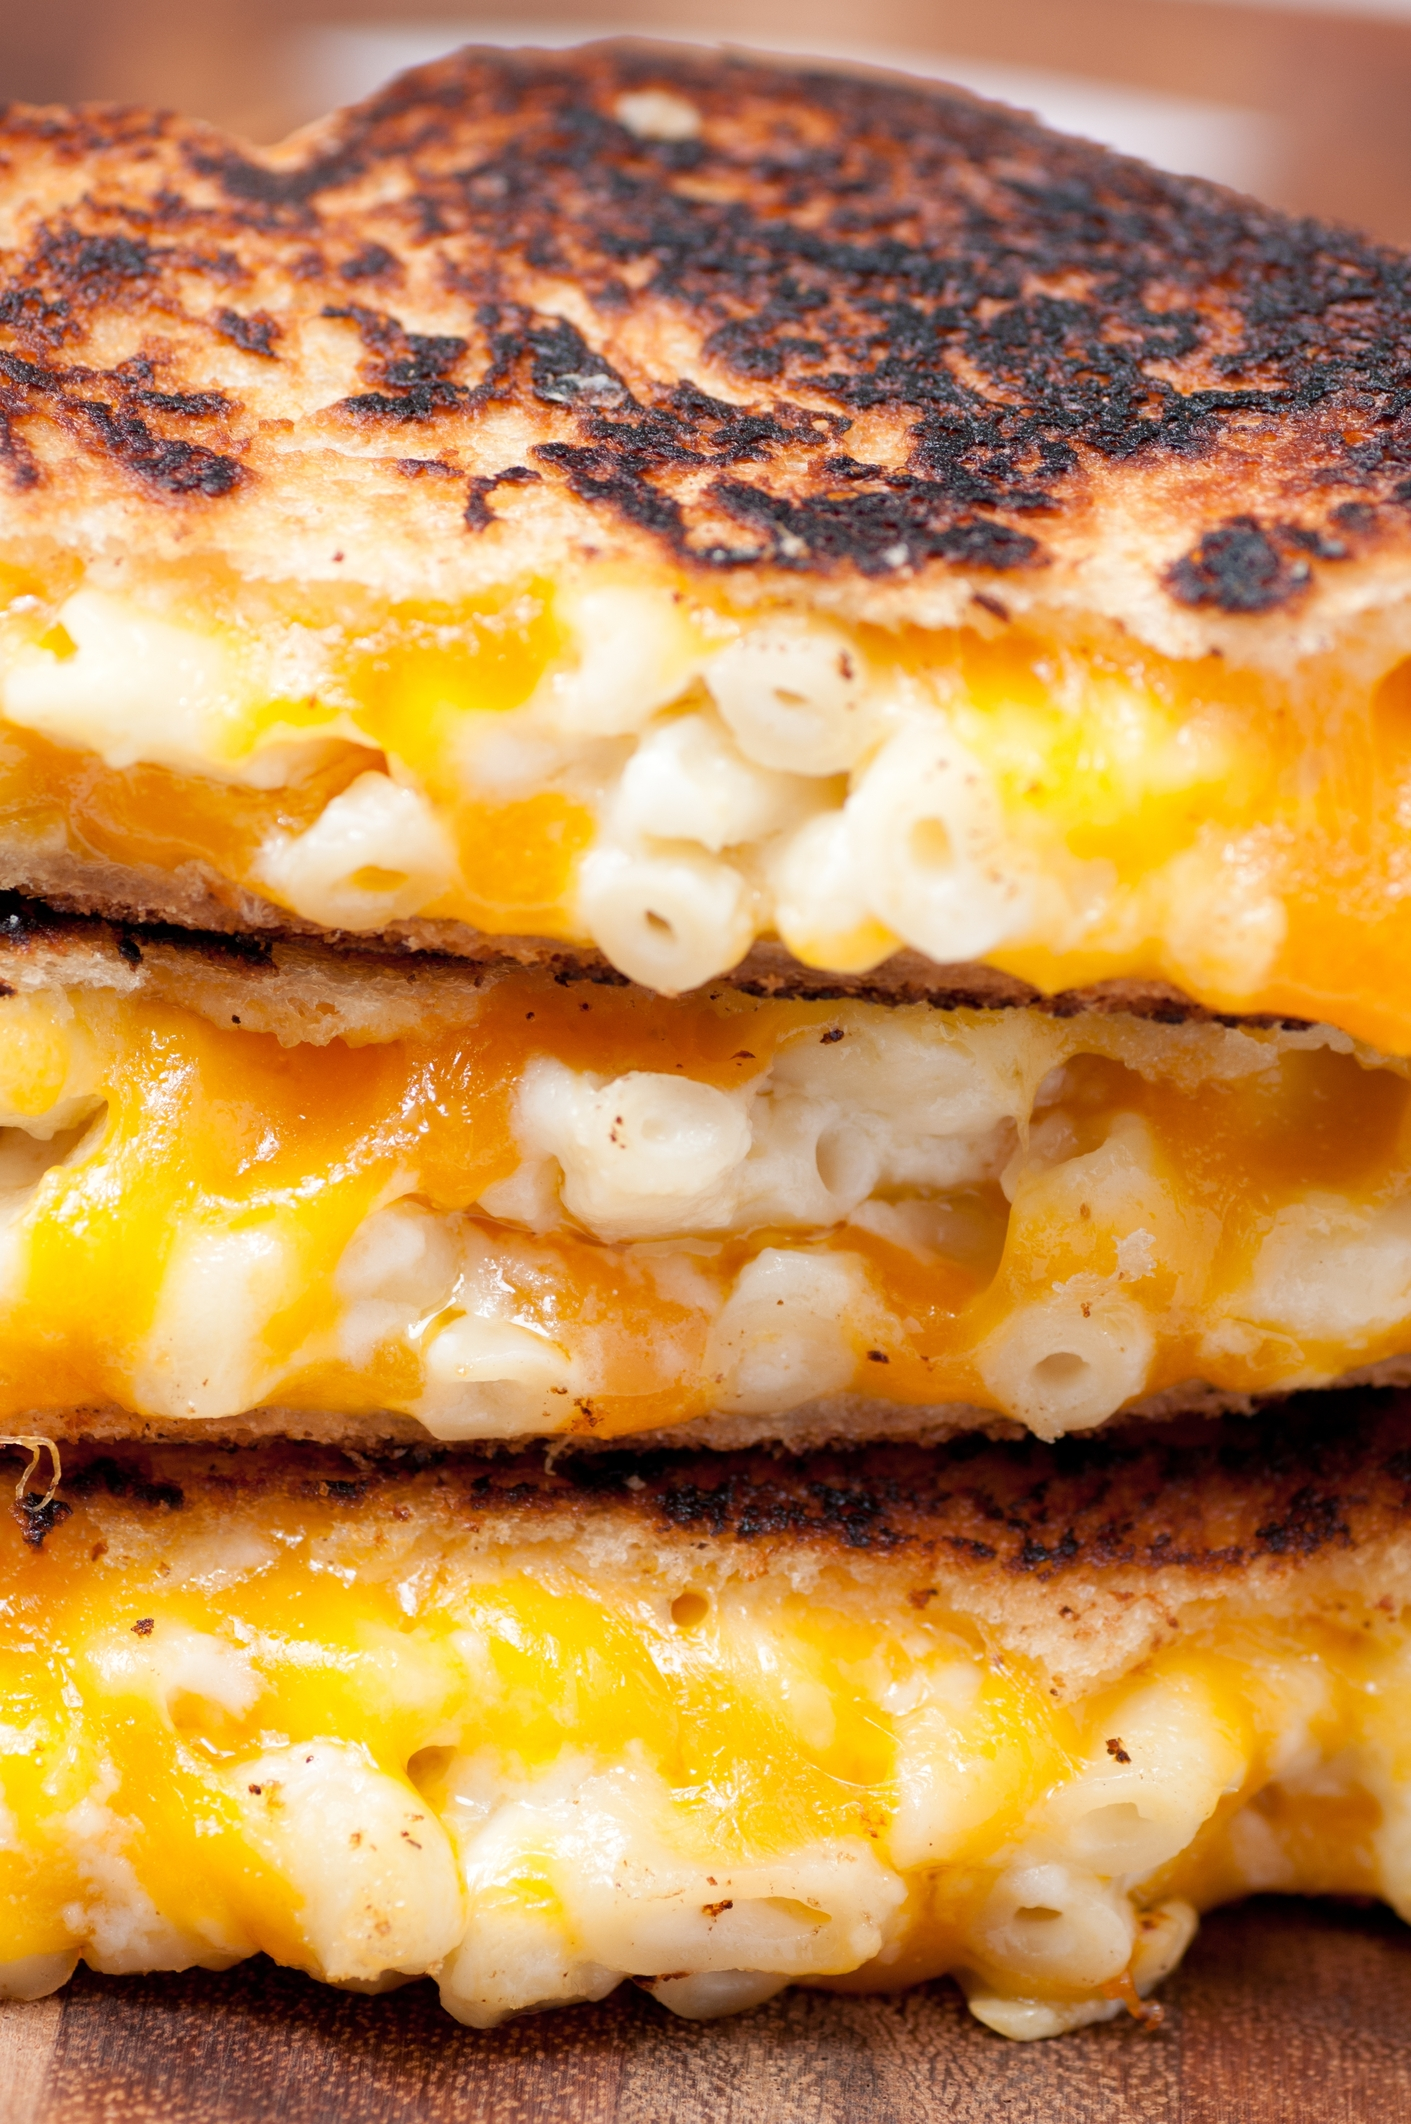 I've gathered up some easy at home lunch ideas for kids, some with as few as three ingredients, to help you get through this spring and summer. This grilled macaroni and cheese sandwich will become their new favorite!